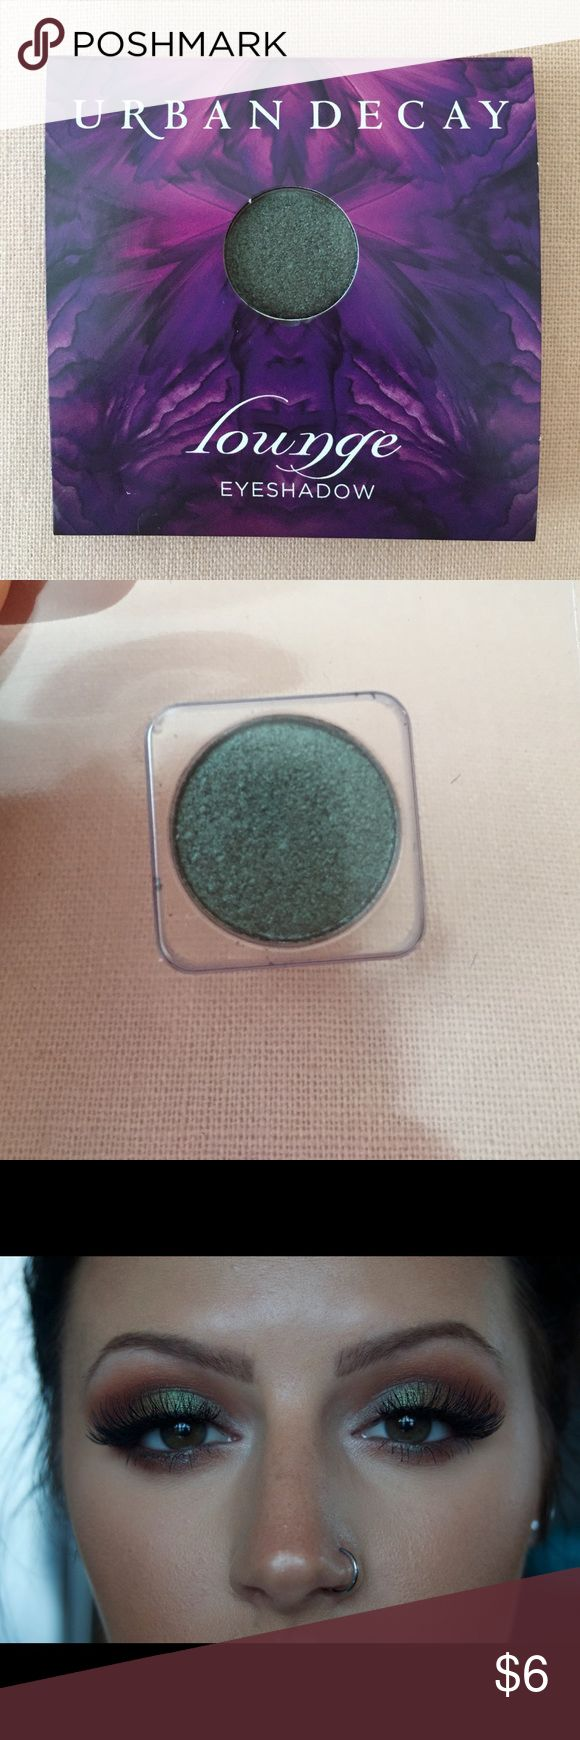 Urban Decay Lounge Eyeshadow Never been used. Photo for color reference only. This is a super cool color! I just don't think I could pull it off with my skin tone :) Urban Decay Makeup Eyeshadow